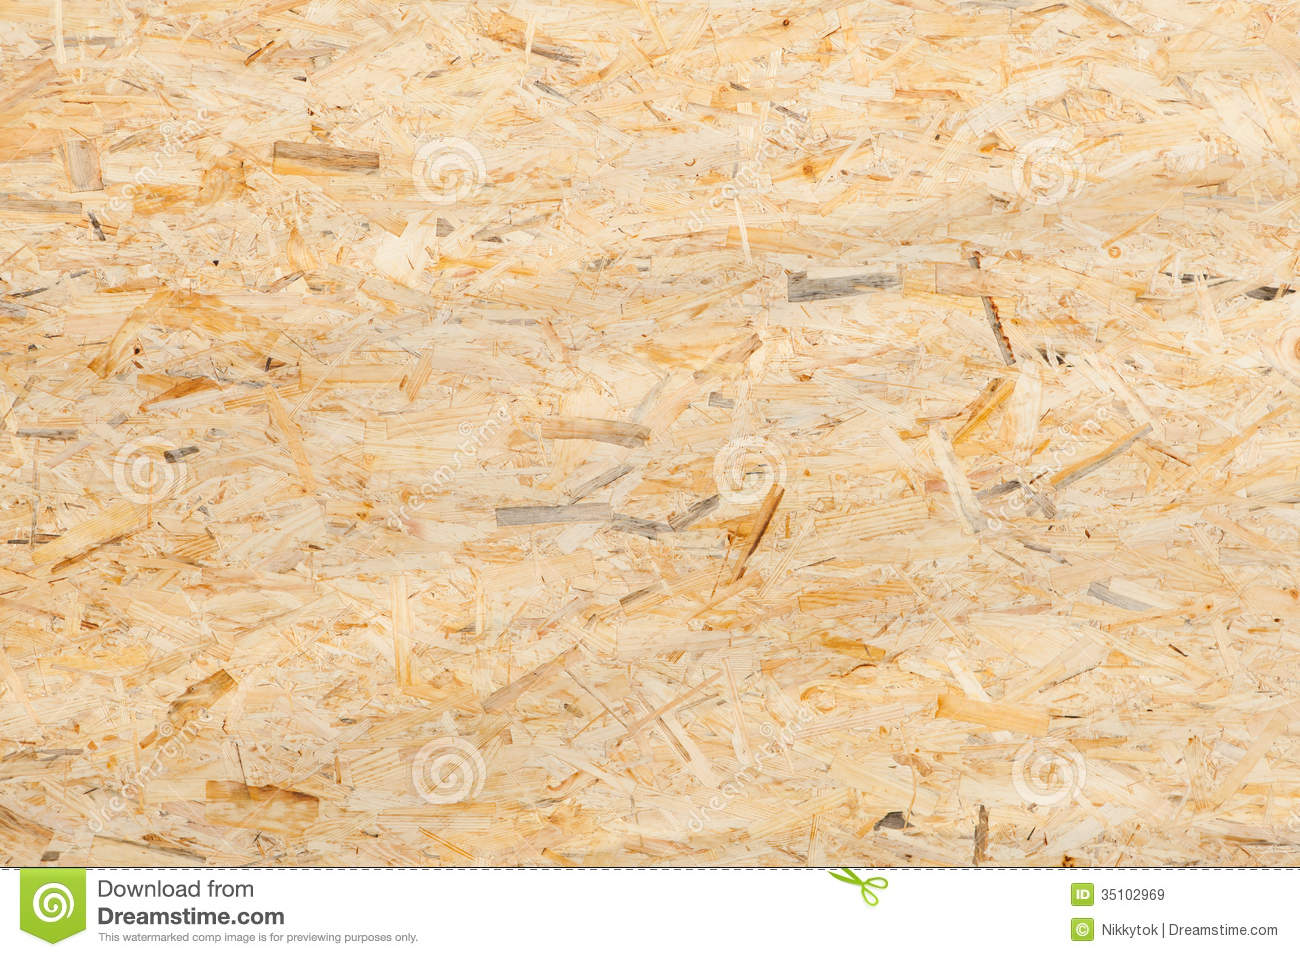 oriented strand board texture royalty free stock images image 35102969. Black Bedroom Furniture Sets. Home Design Ideas